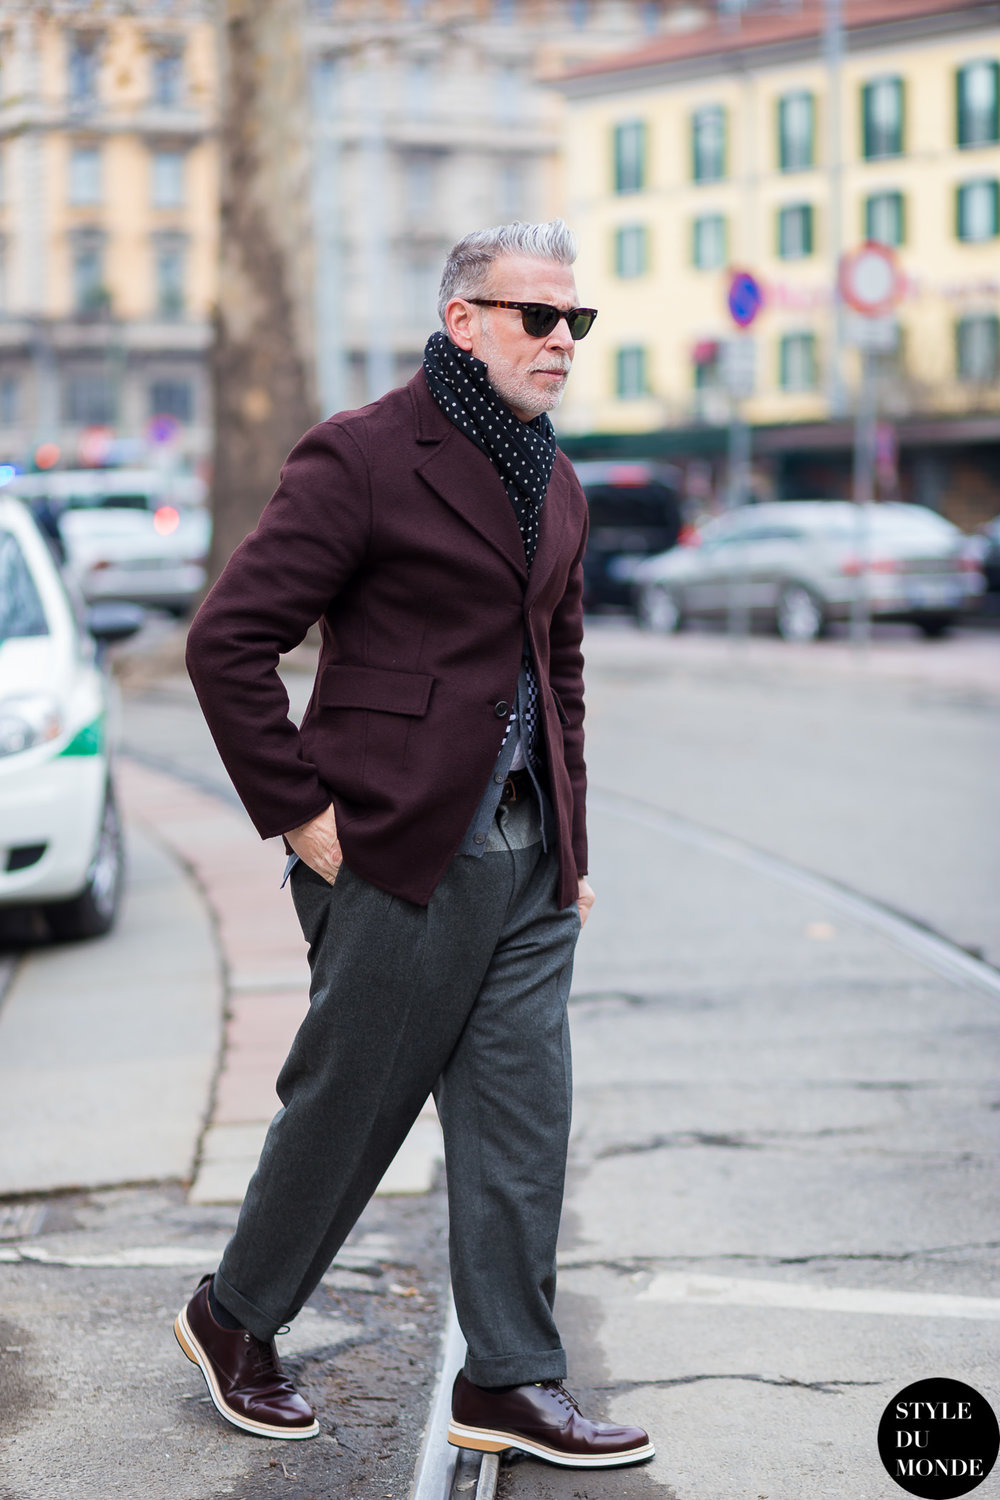 Nick-Wooster-by-STYLEDUMONDE-Street-Style-Fashion-Blog_MG_9903.jpg